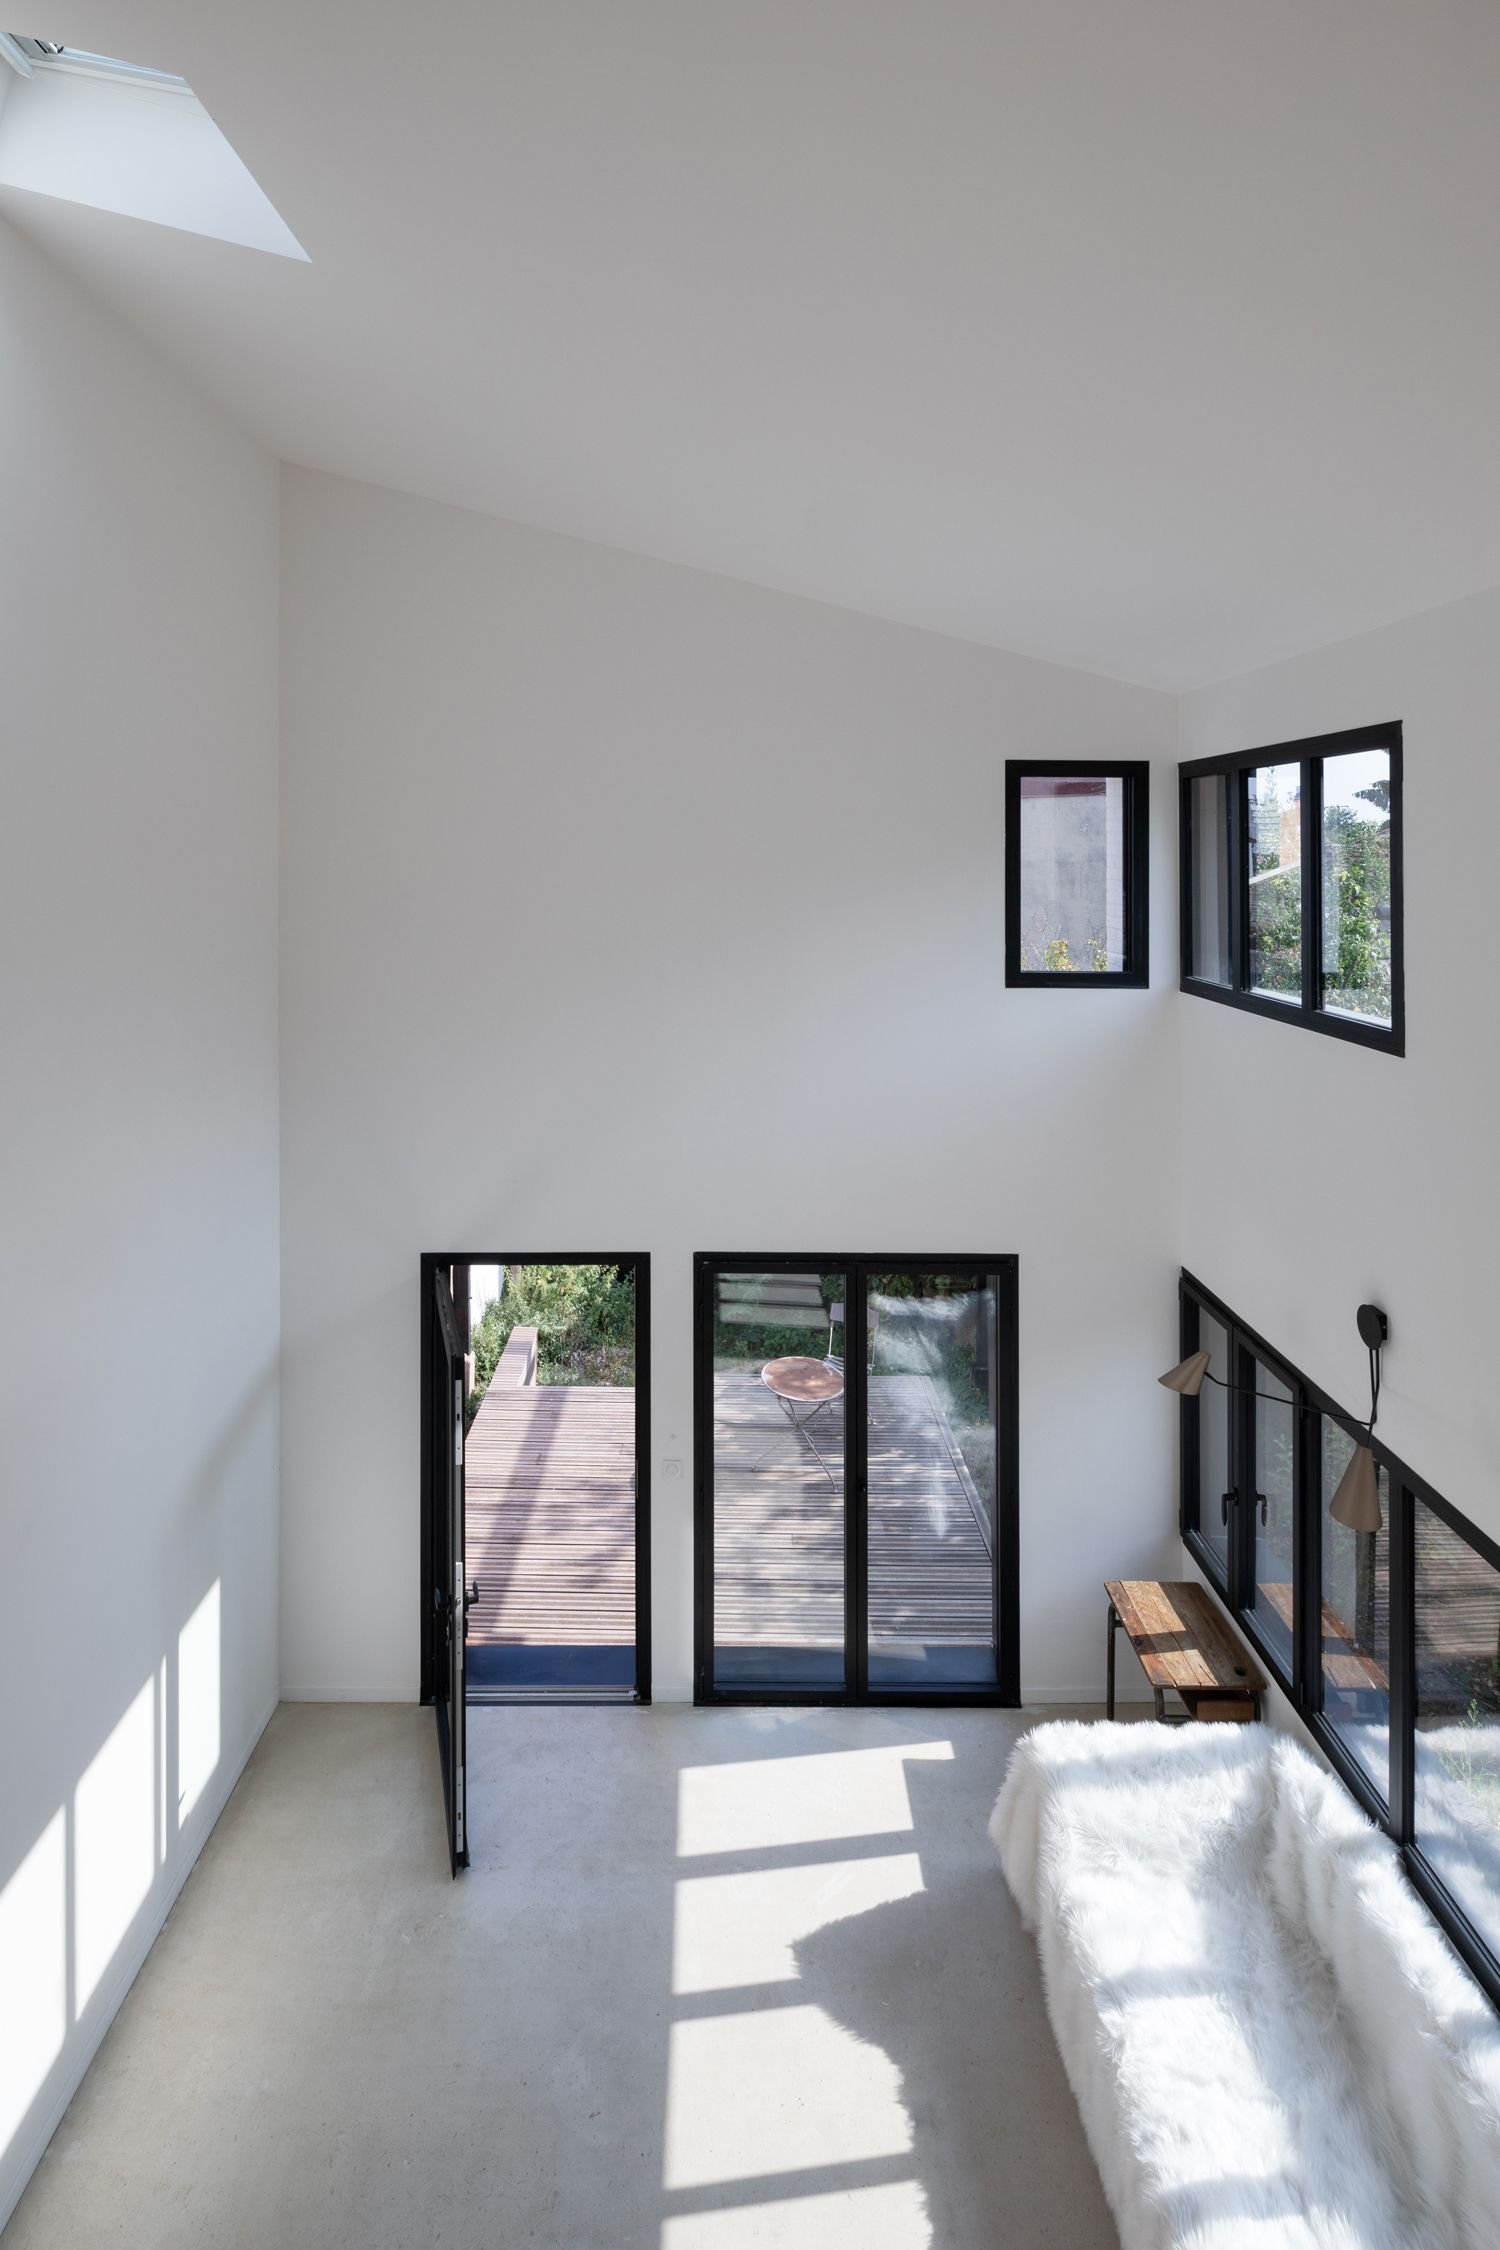 Tall ceiling makes the innovative design inside the house possible